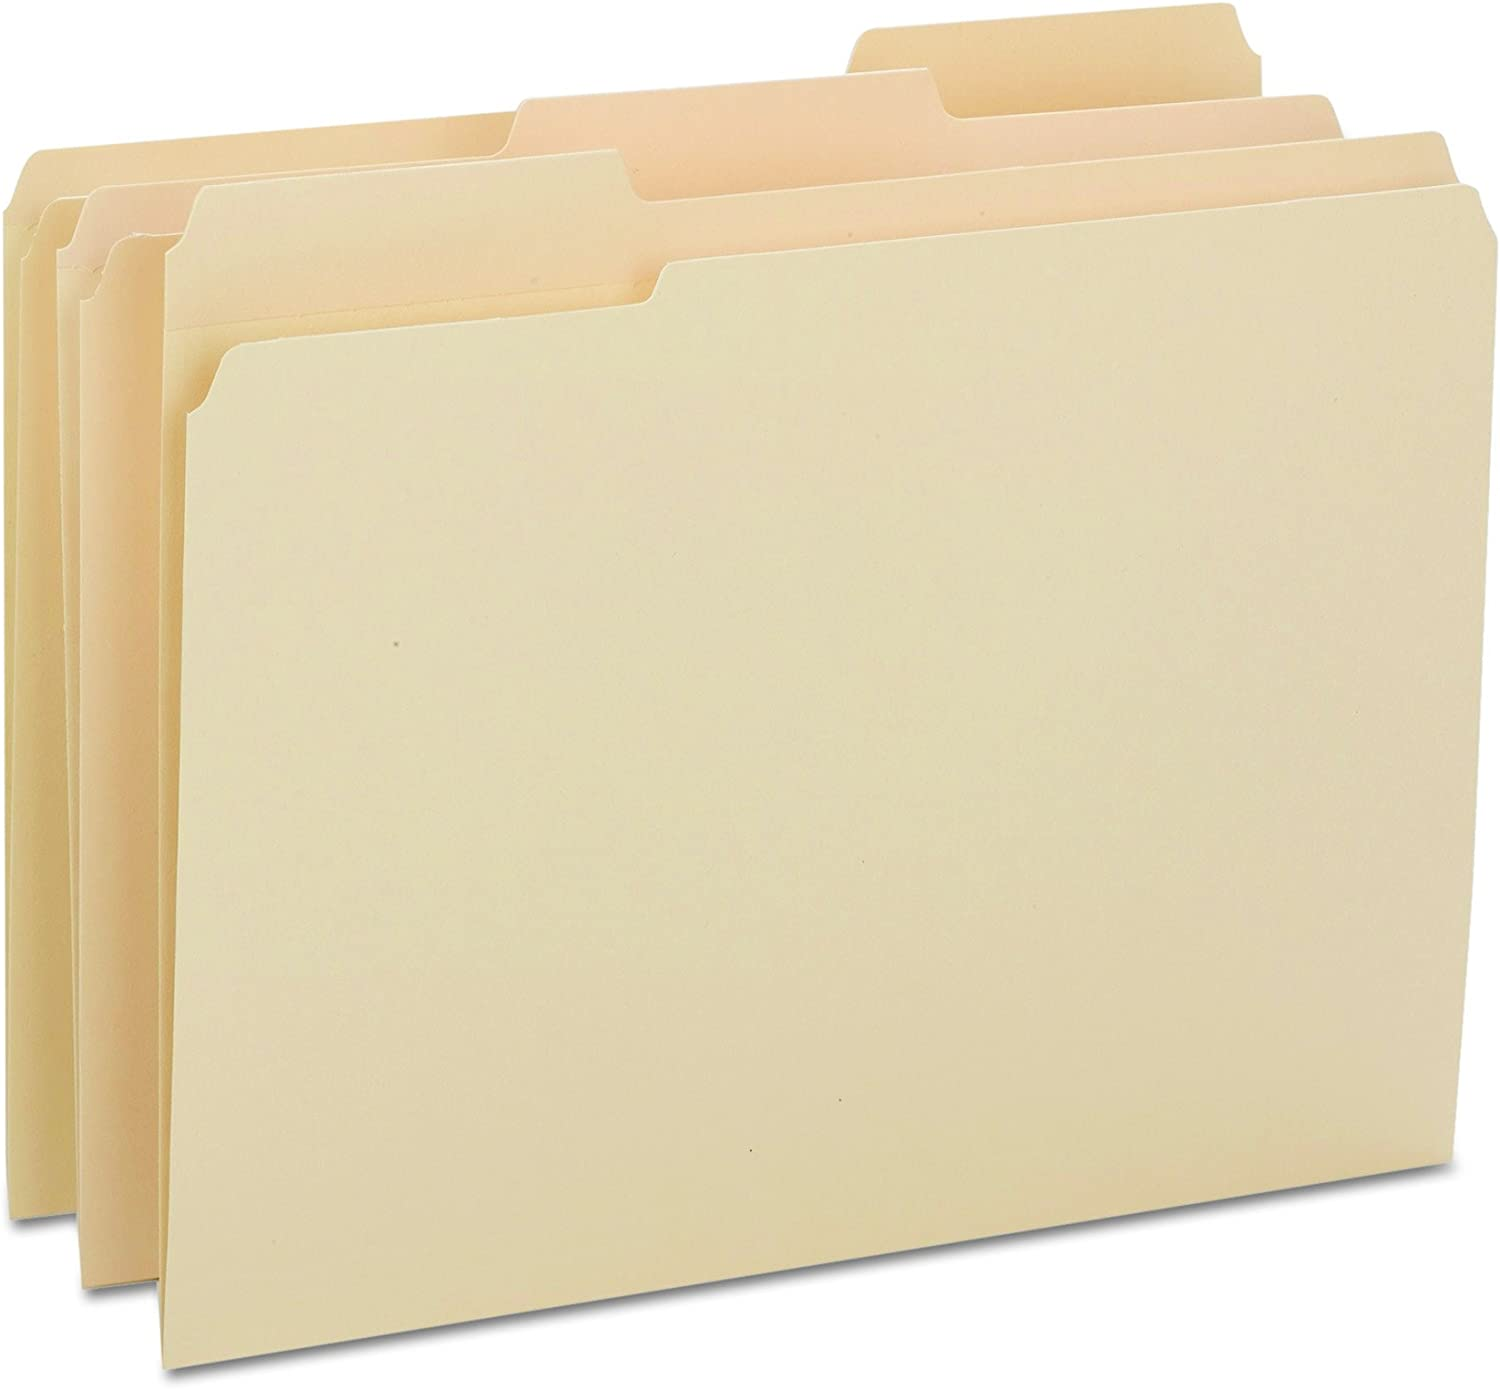 Smead Heavyweight File Folder, Reinforced 1/3-Cut Tab, Letter Size, Manila, 100 Per Box (10434)